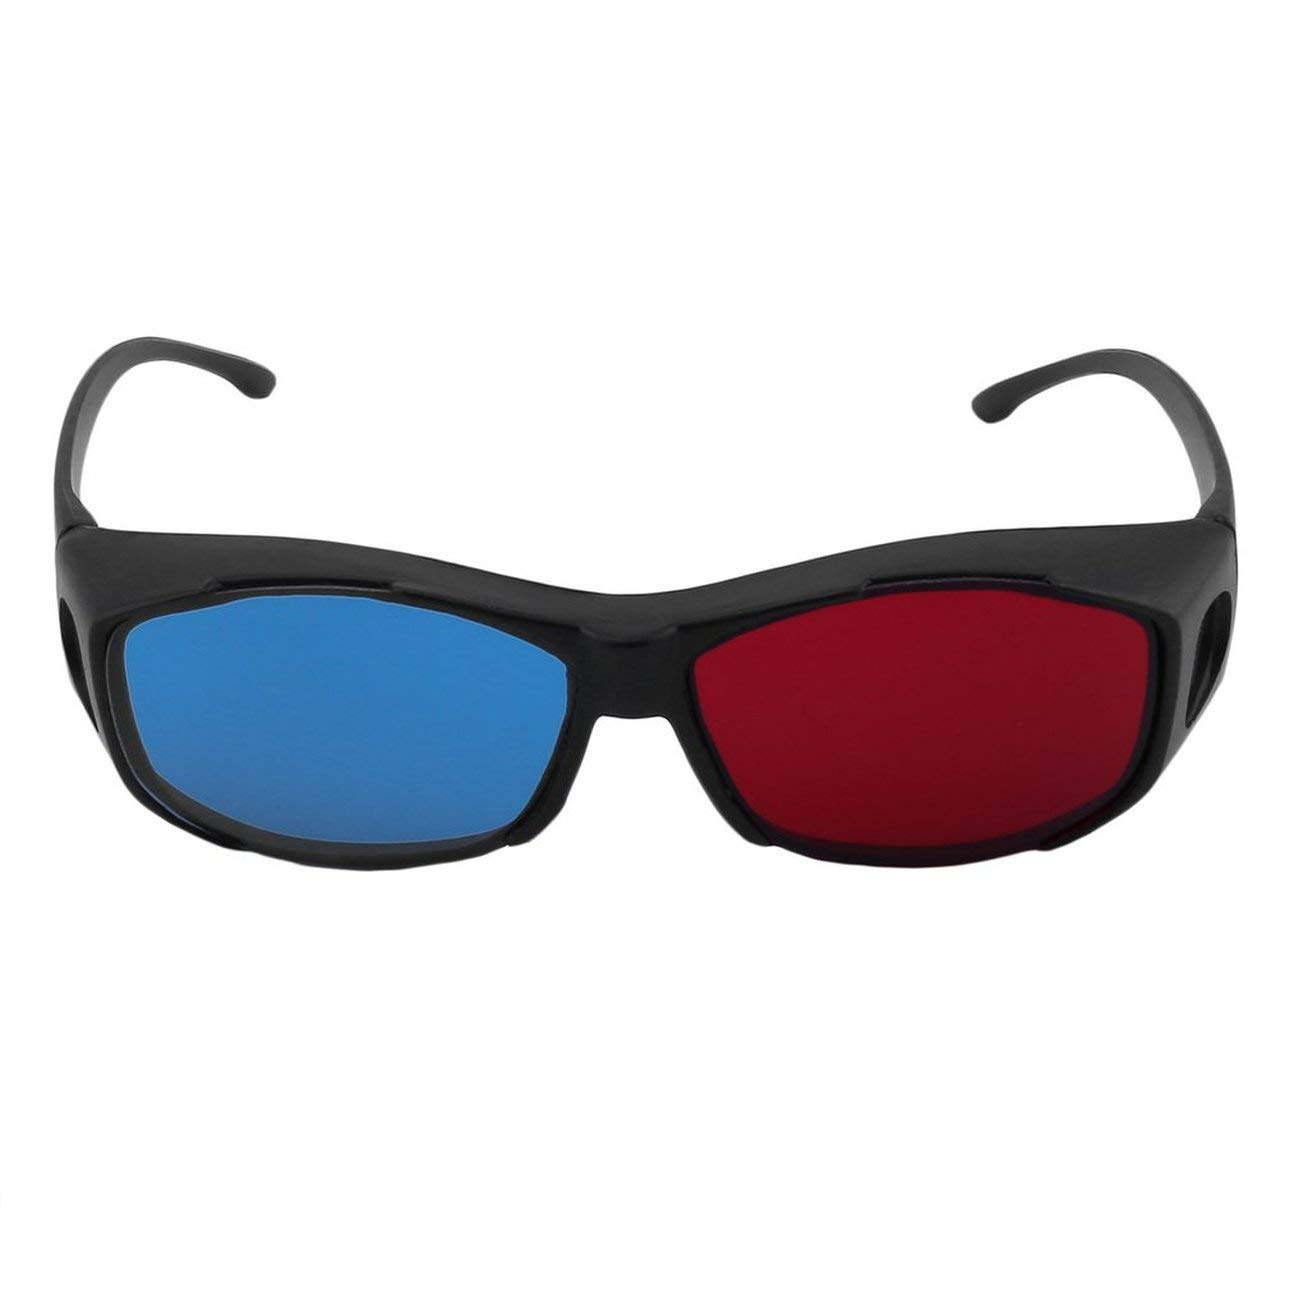 Liobaba Universal Type 3D Glasses TV Movie Dimensional Anaglyph Video Frame 3D Vision Glasses DVD Game Glass Red and Blue Color